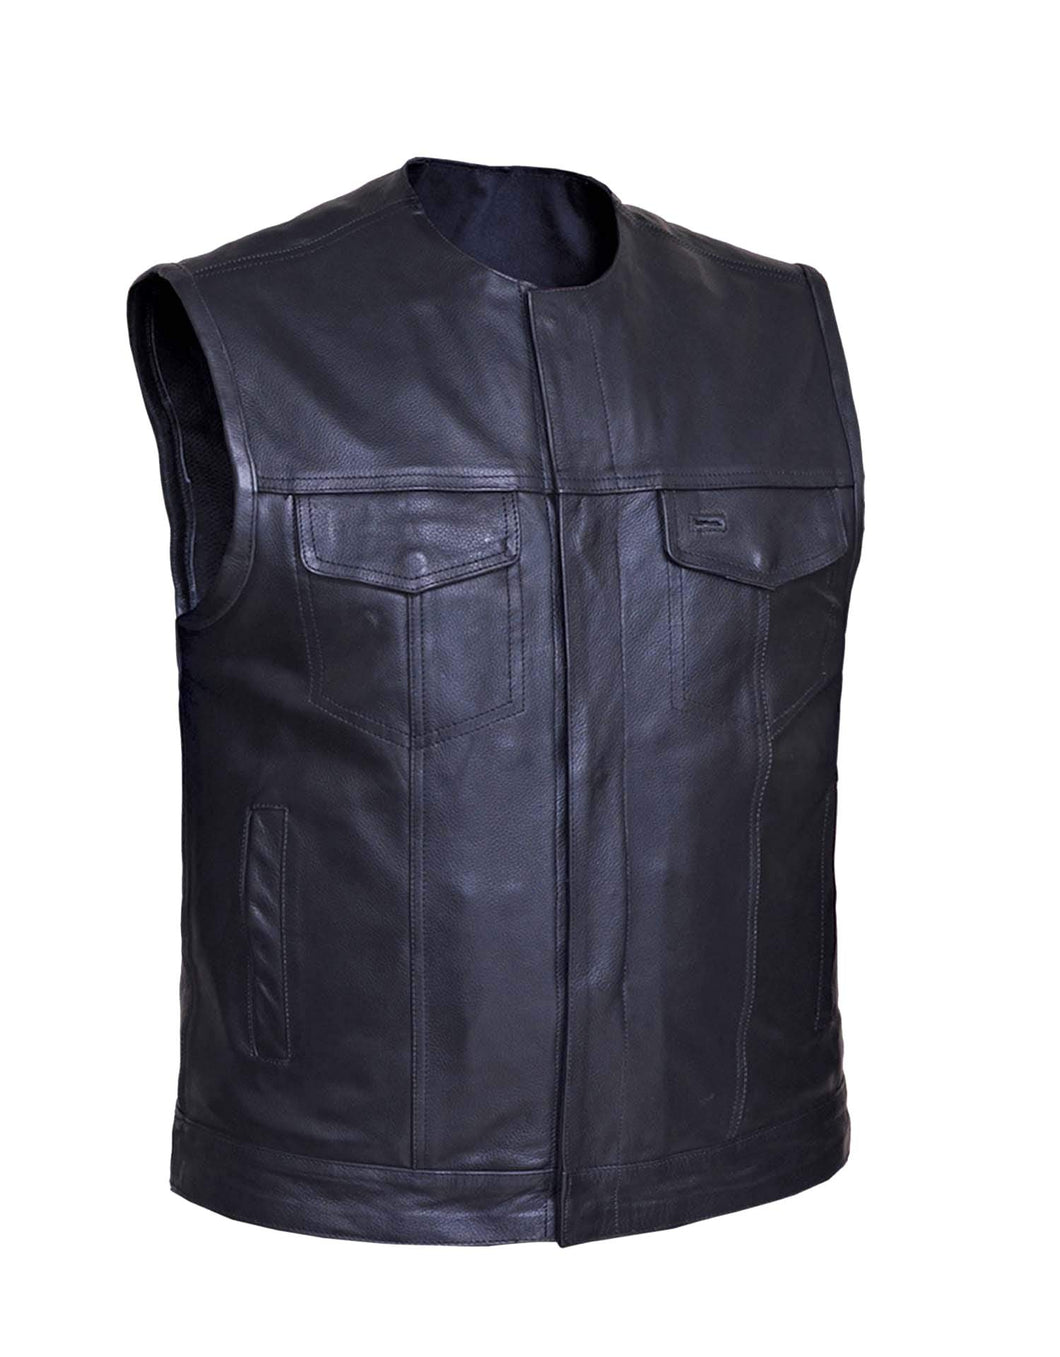 UNIK Men's SOA Style Motorcycle Vest - Leather Lollipop